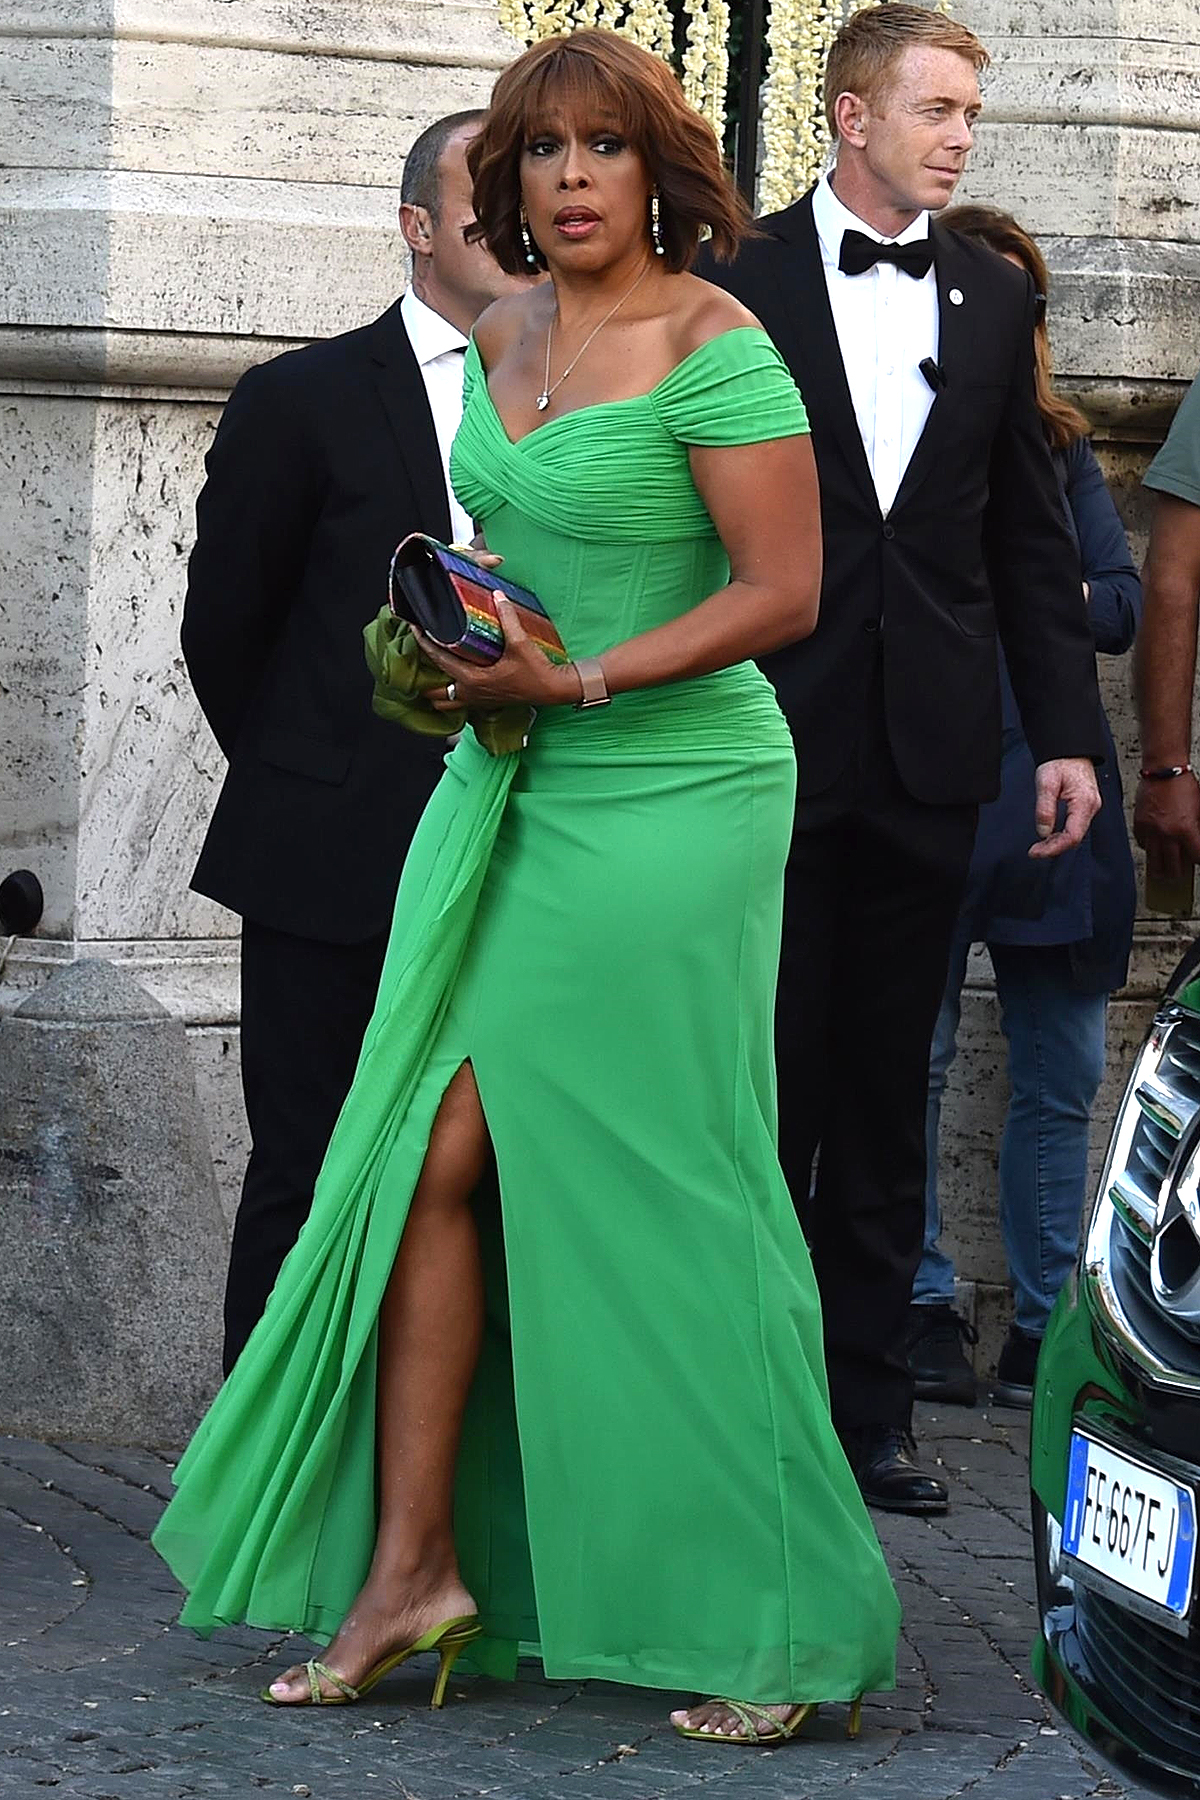 Gayle King and other guests arrive at Misha Nonoo's wedding in Rome, Italy